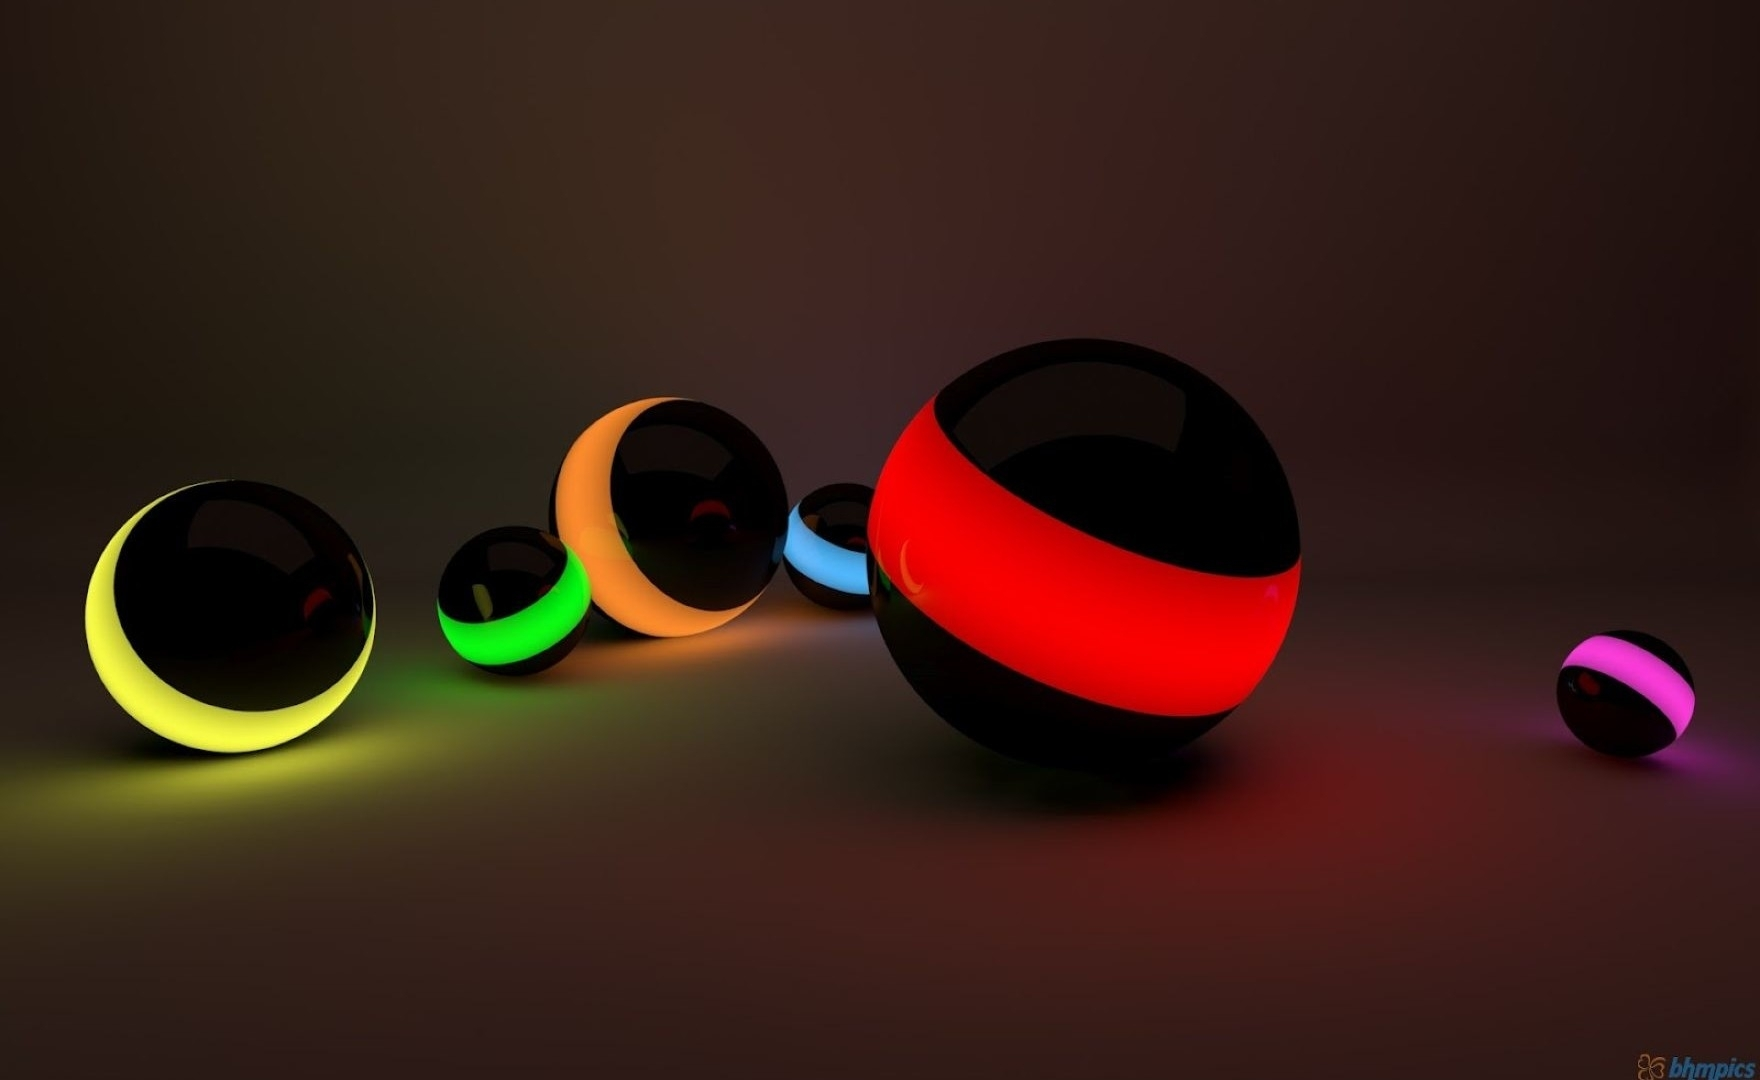 3d hd colorful ball for laptop free download wallpaper: desktop hd